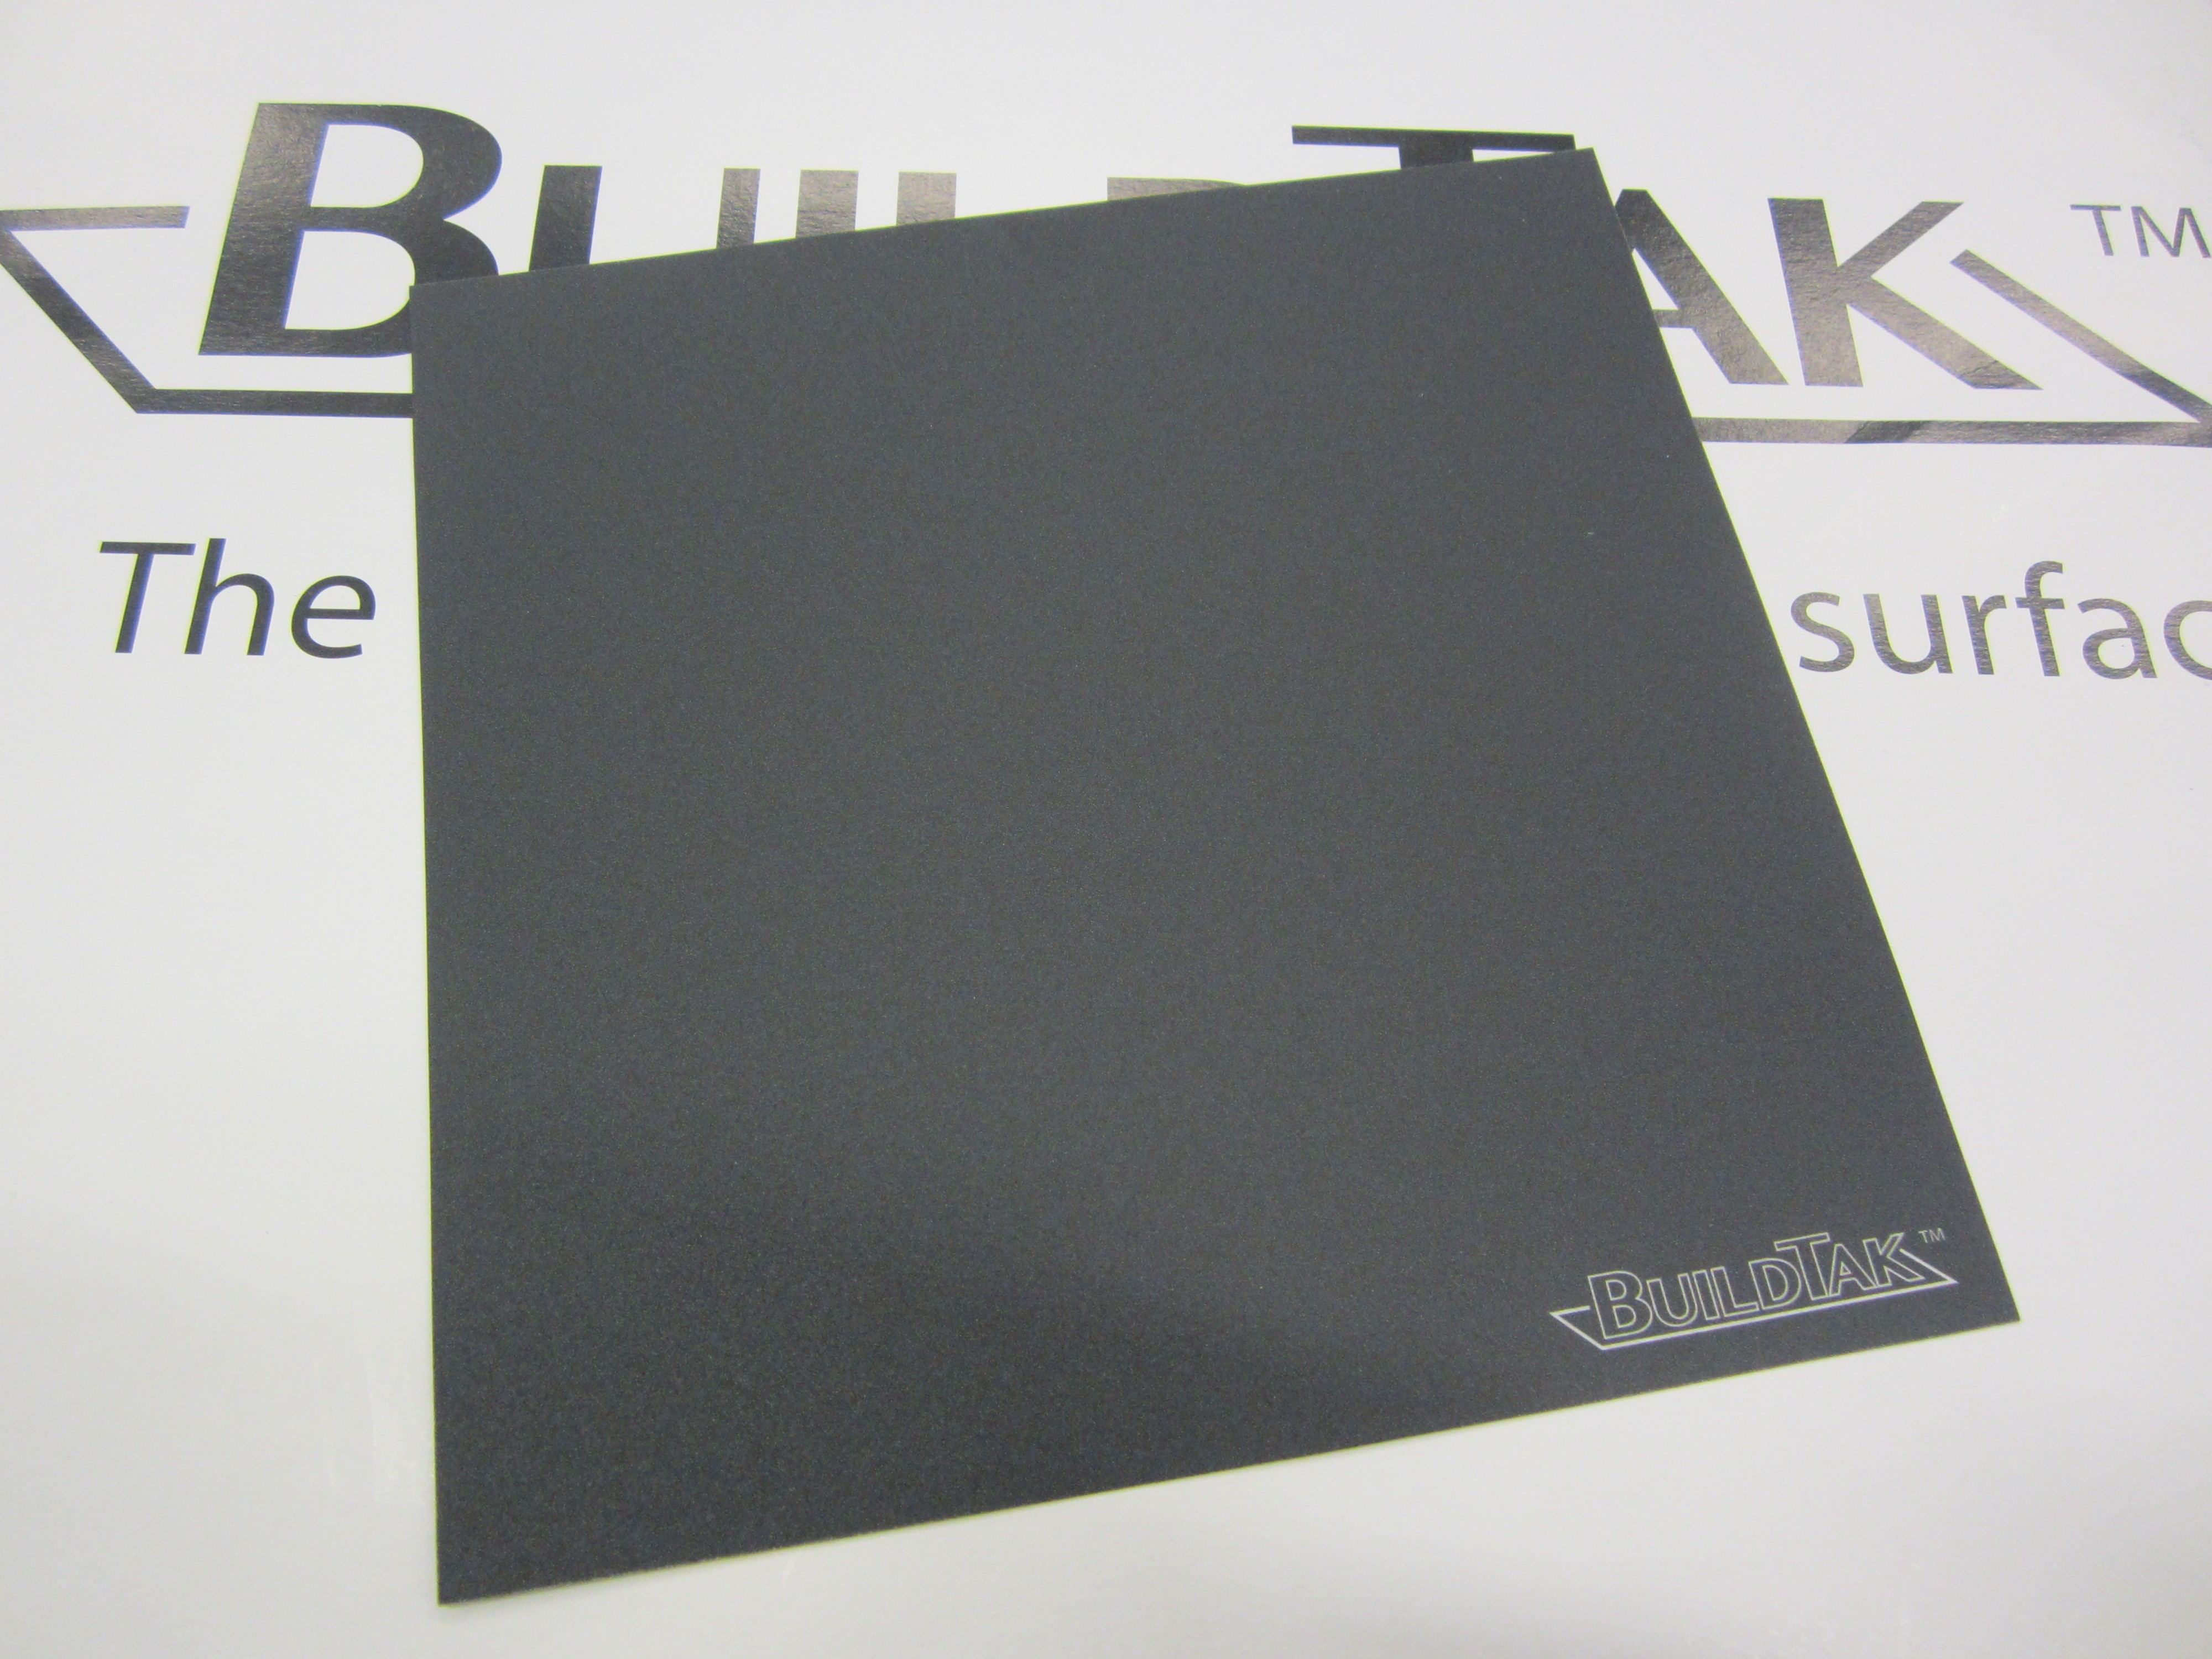 PACK 3 Buildtak 203x203